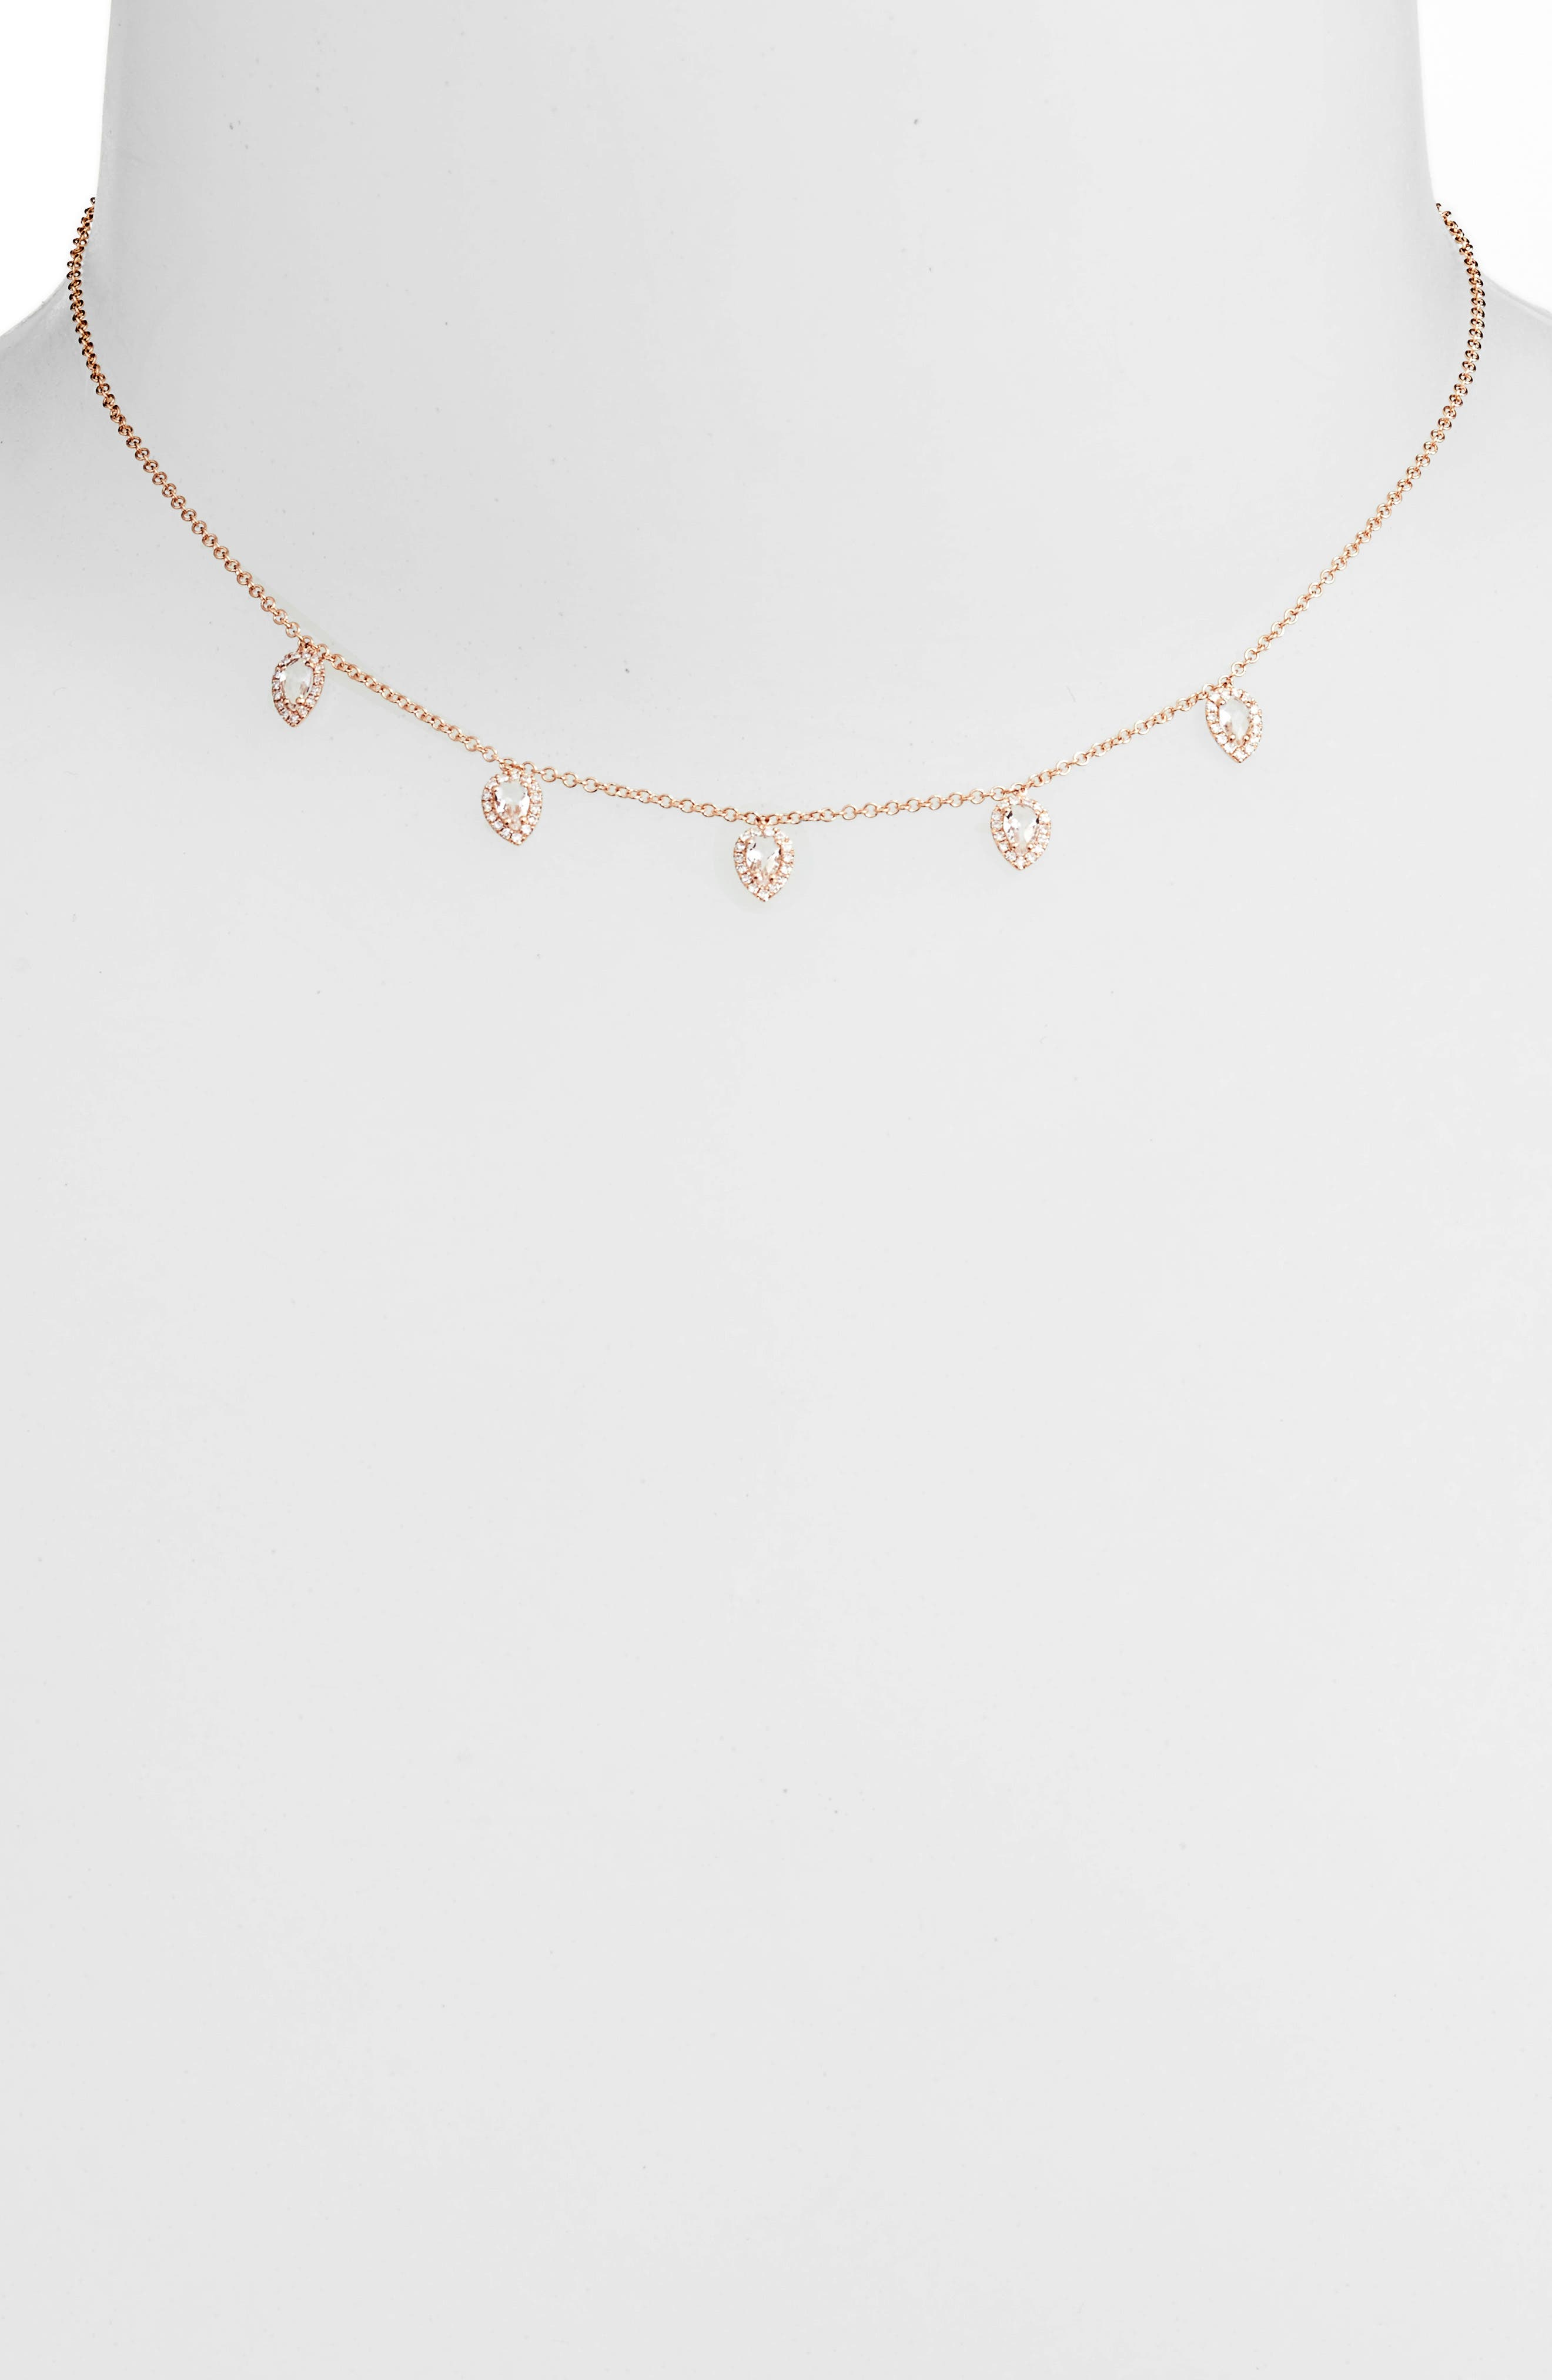 Diamond Collar Necklace,                         Main,                         color, Rose Gold